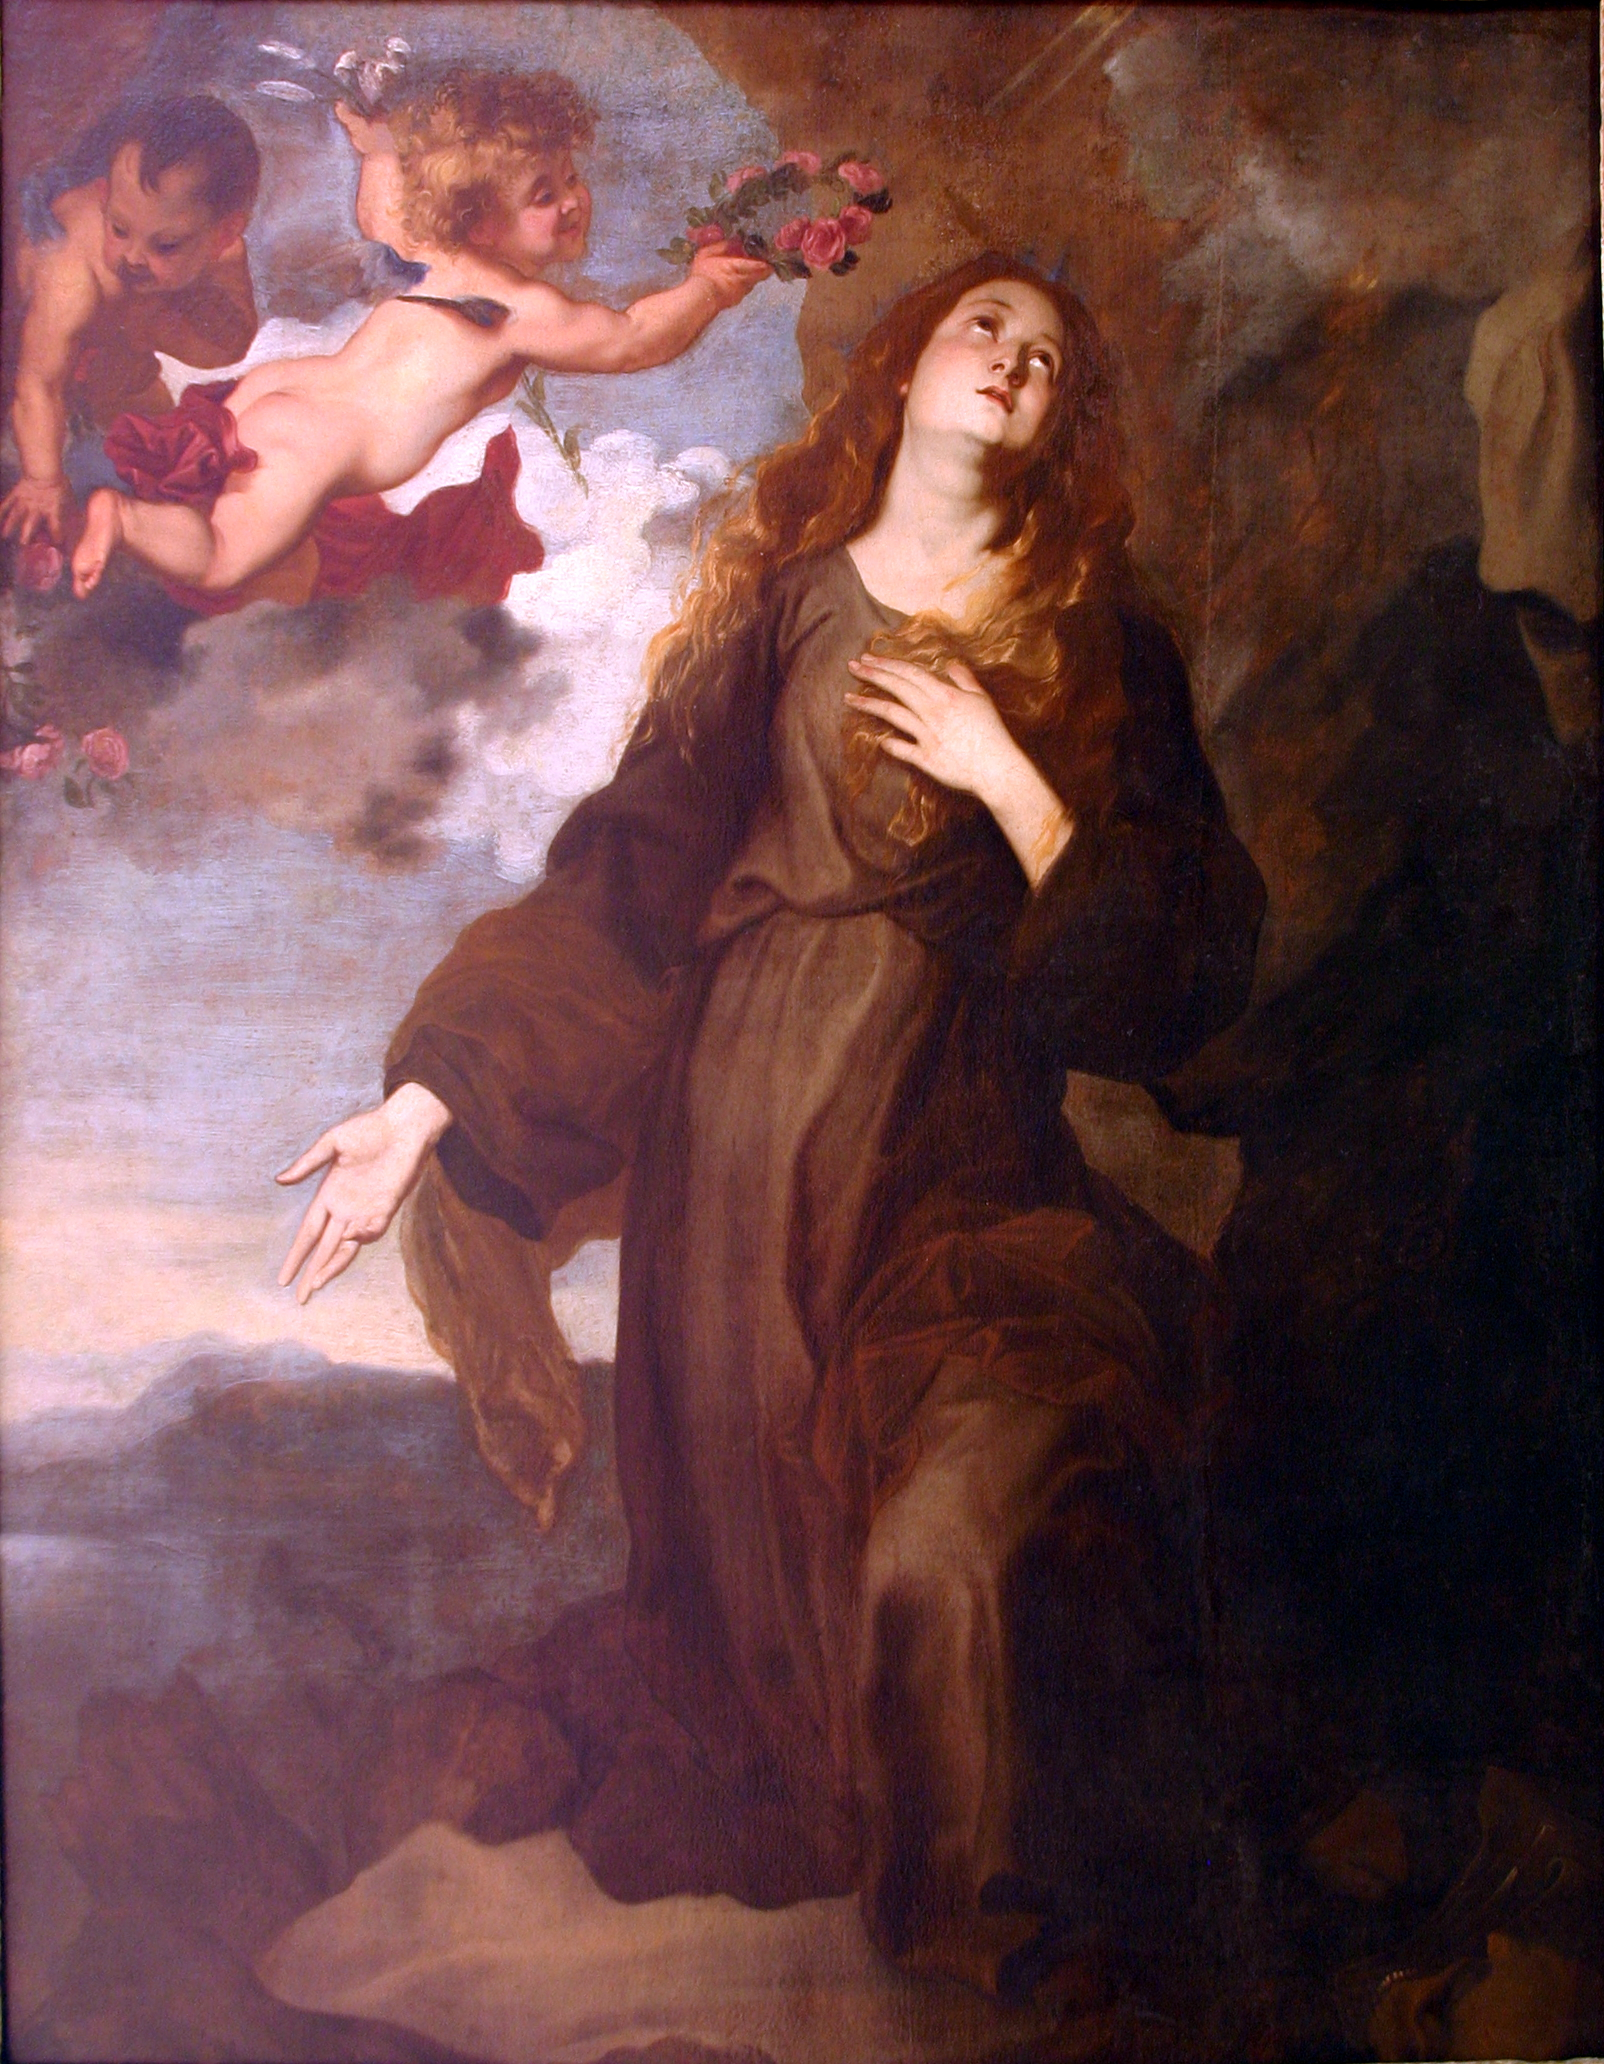 https://upload.wikimedia.org/wikipedia/commons/9/93/Saint_Rosalia_-_Anthony_Van_Dyck_-_Palazzo_Abatellis_-_Palermo_-_Italy_2015.JPG